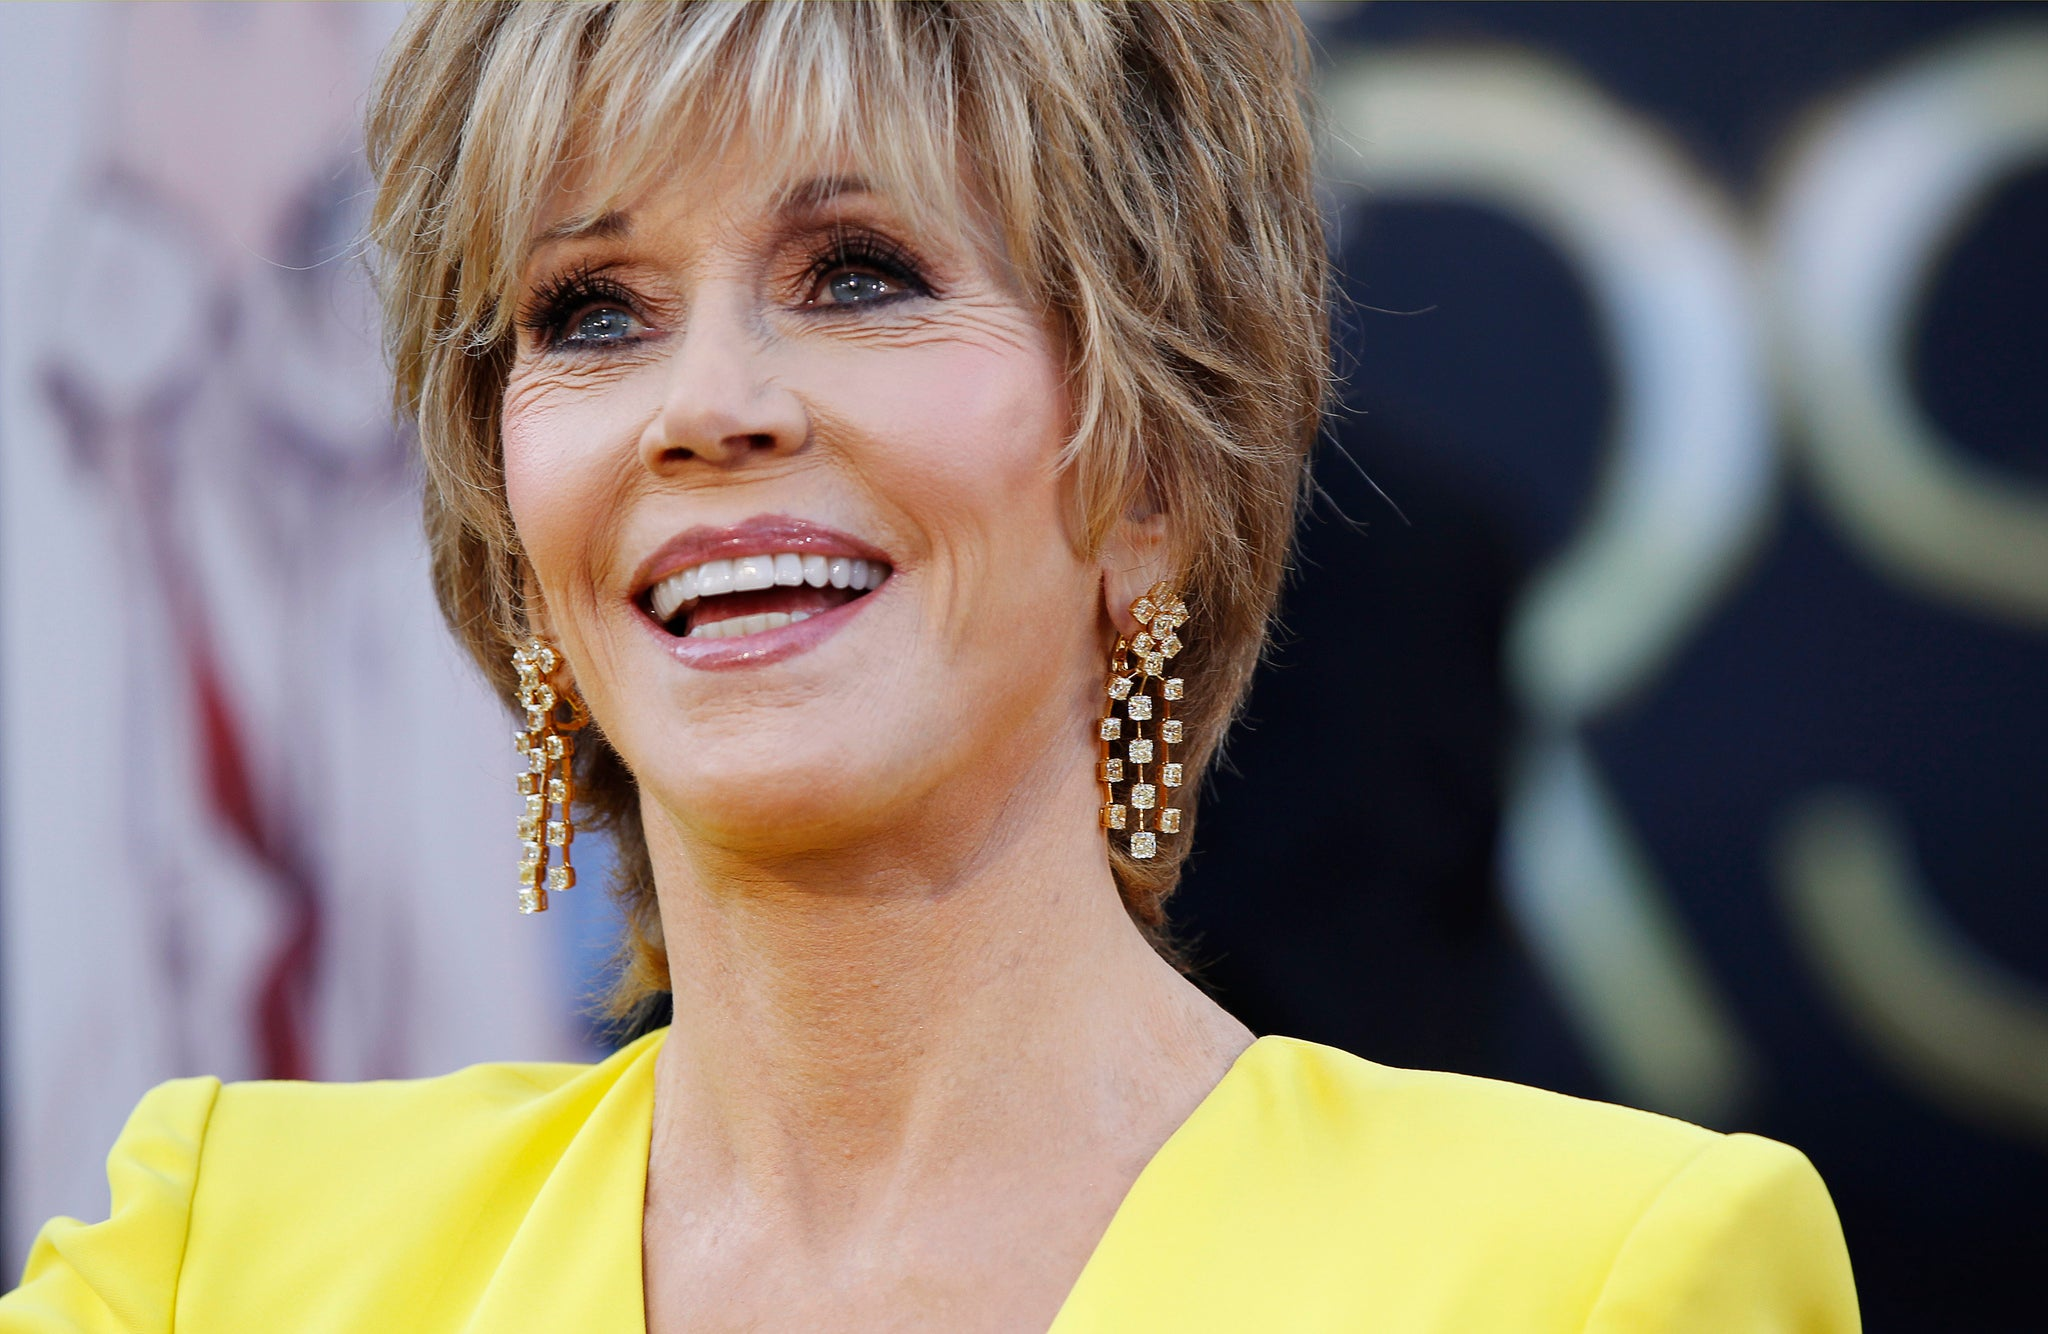 Jane Fonda Builds A Shrine In Honour Of Herself The